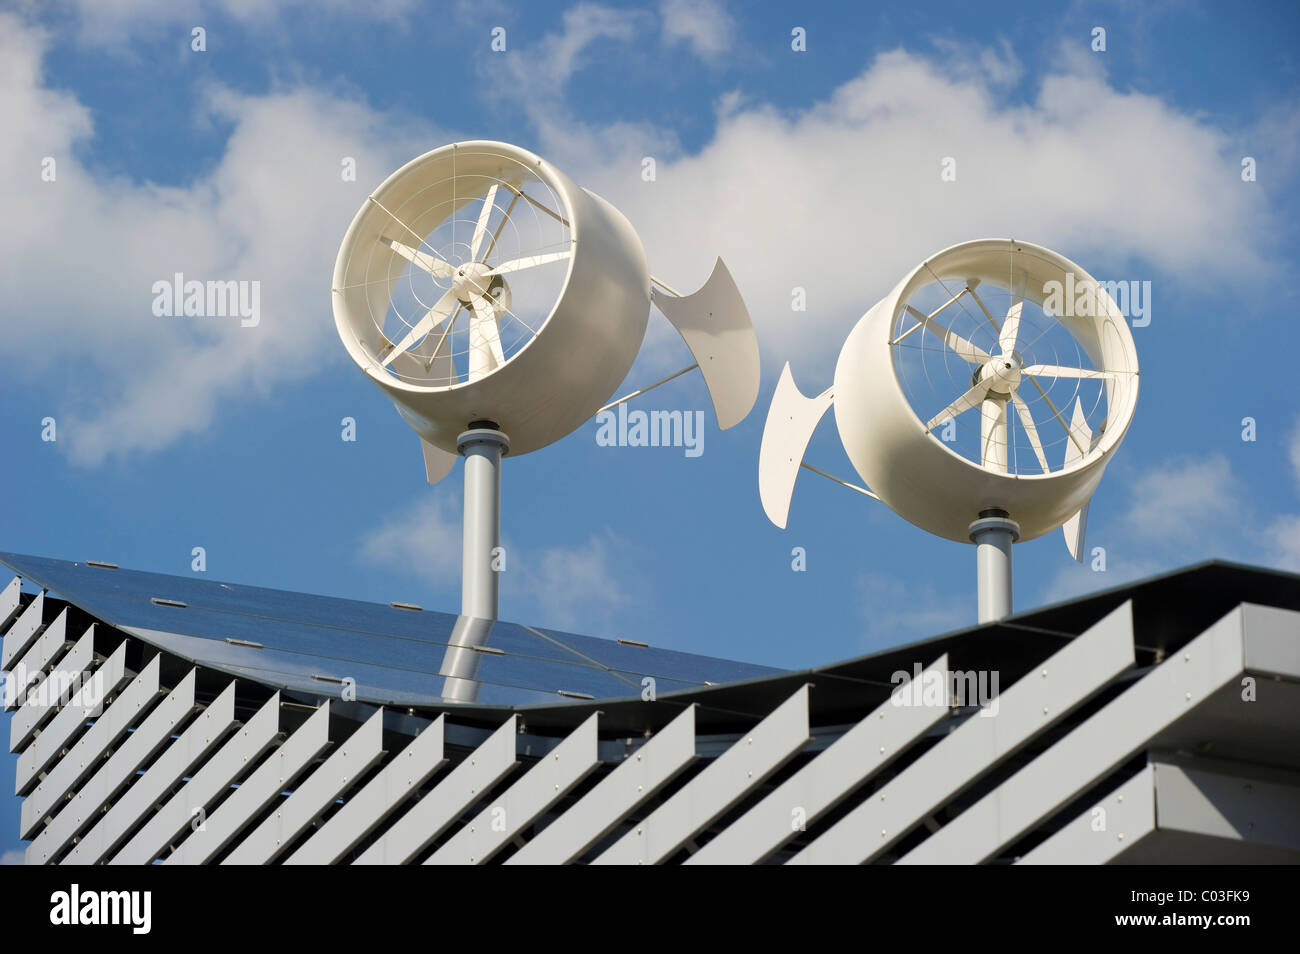 Solar panels and mini wind turbines on the roof of a hotel in Freiburg, Breisgau region, Baden-Wuerttemberg - Stock Image